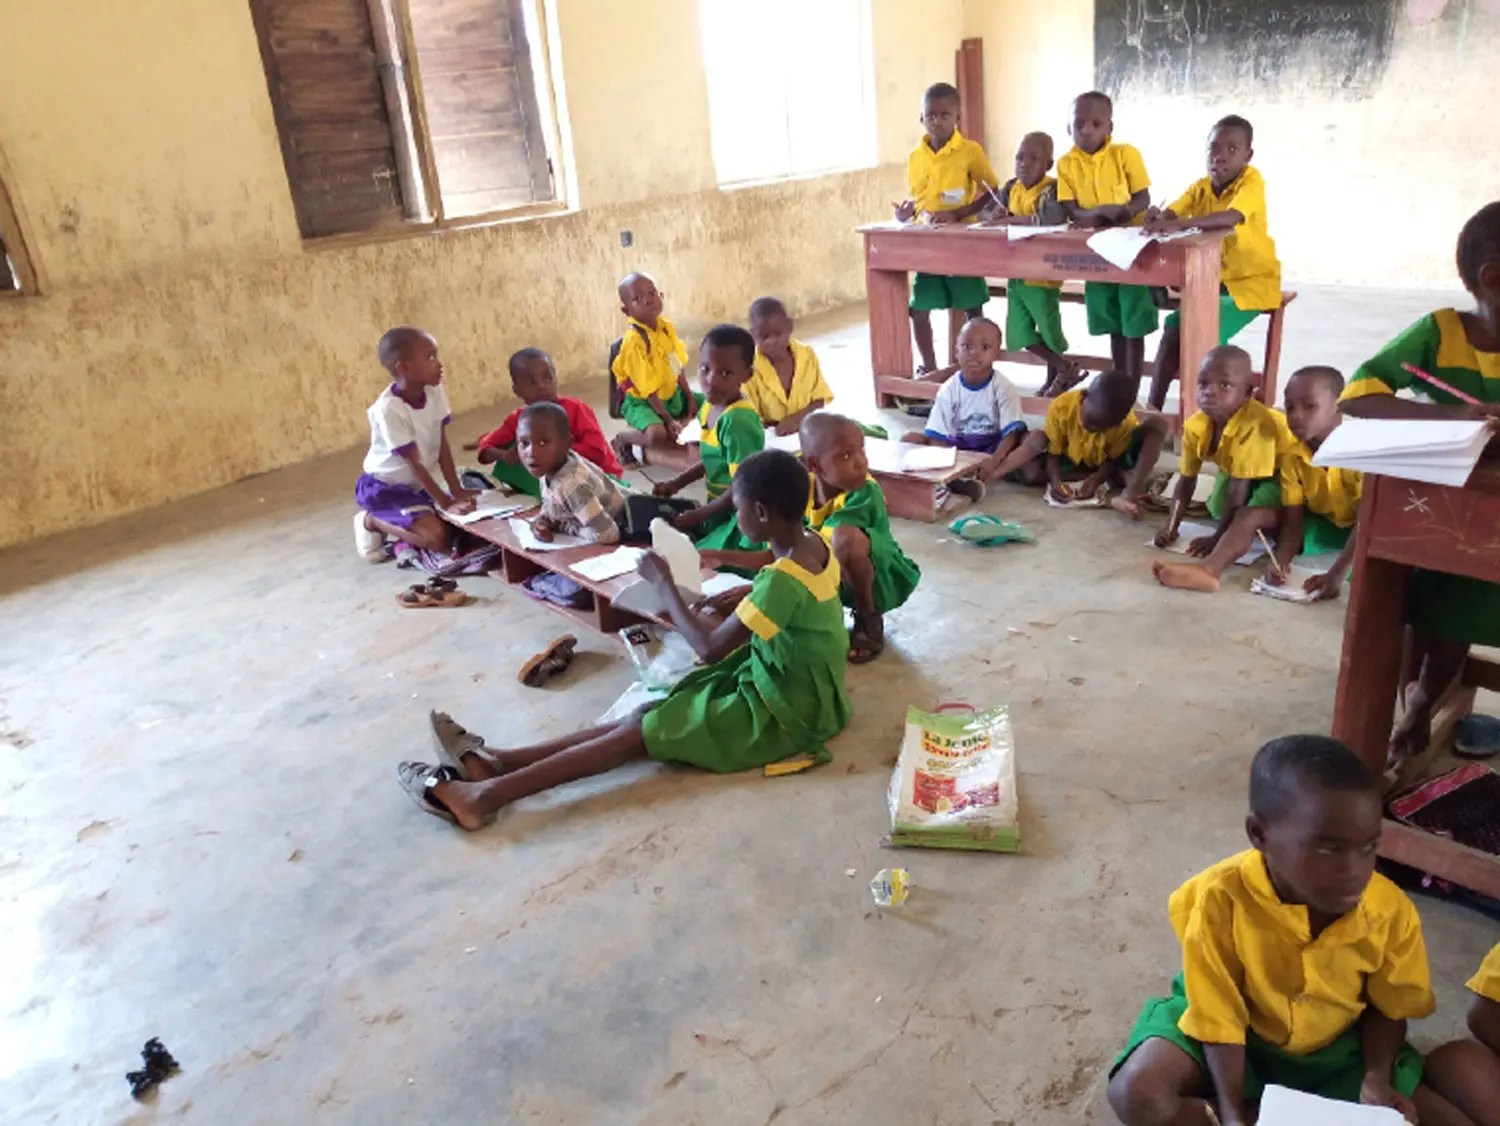 In Akwa Ibom, pupils still sit on floor to learn - Vanguard